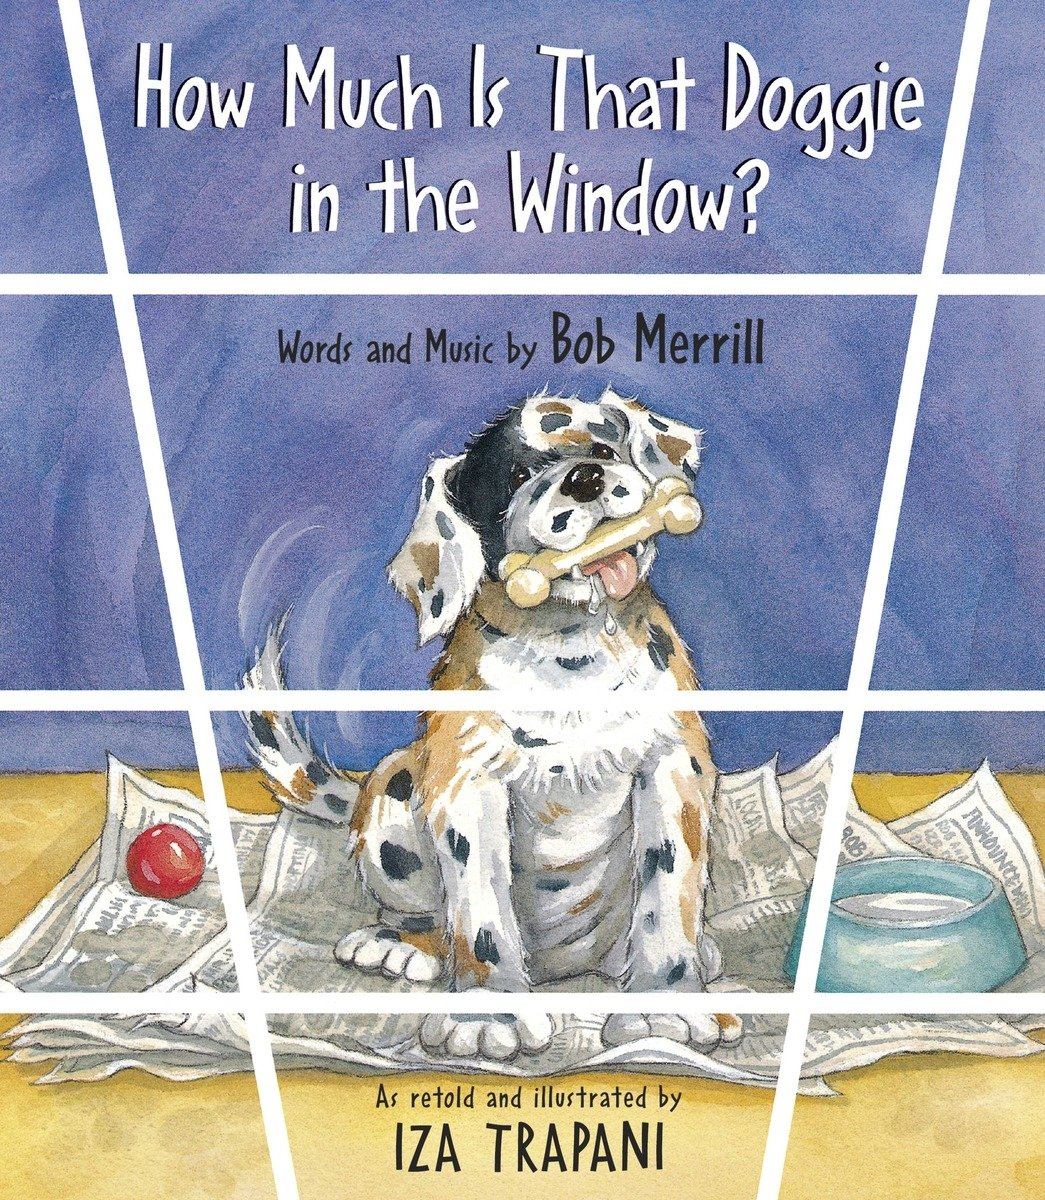 How Much That Doggie Window product image